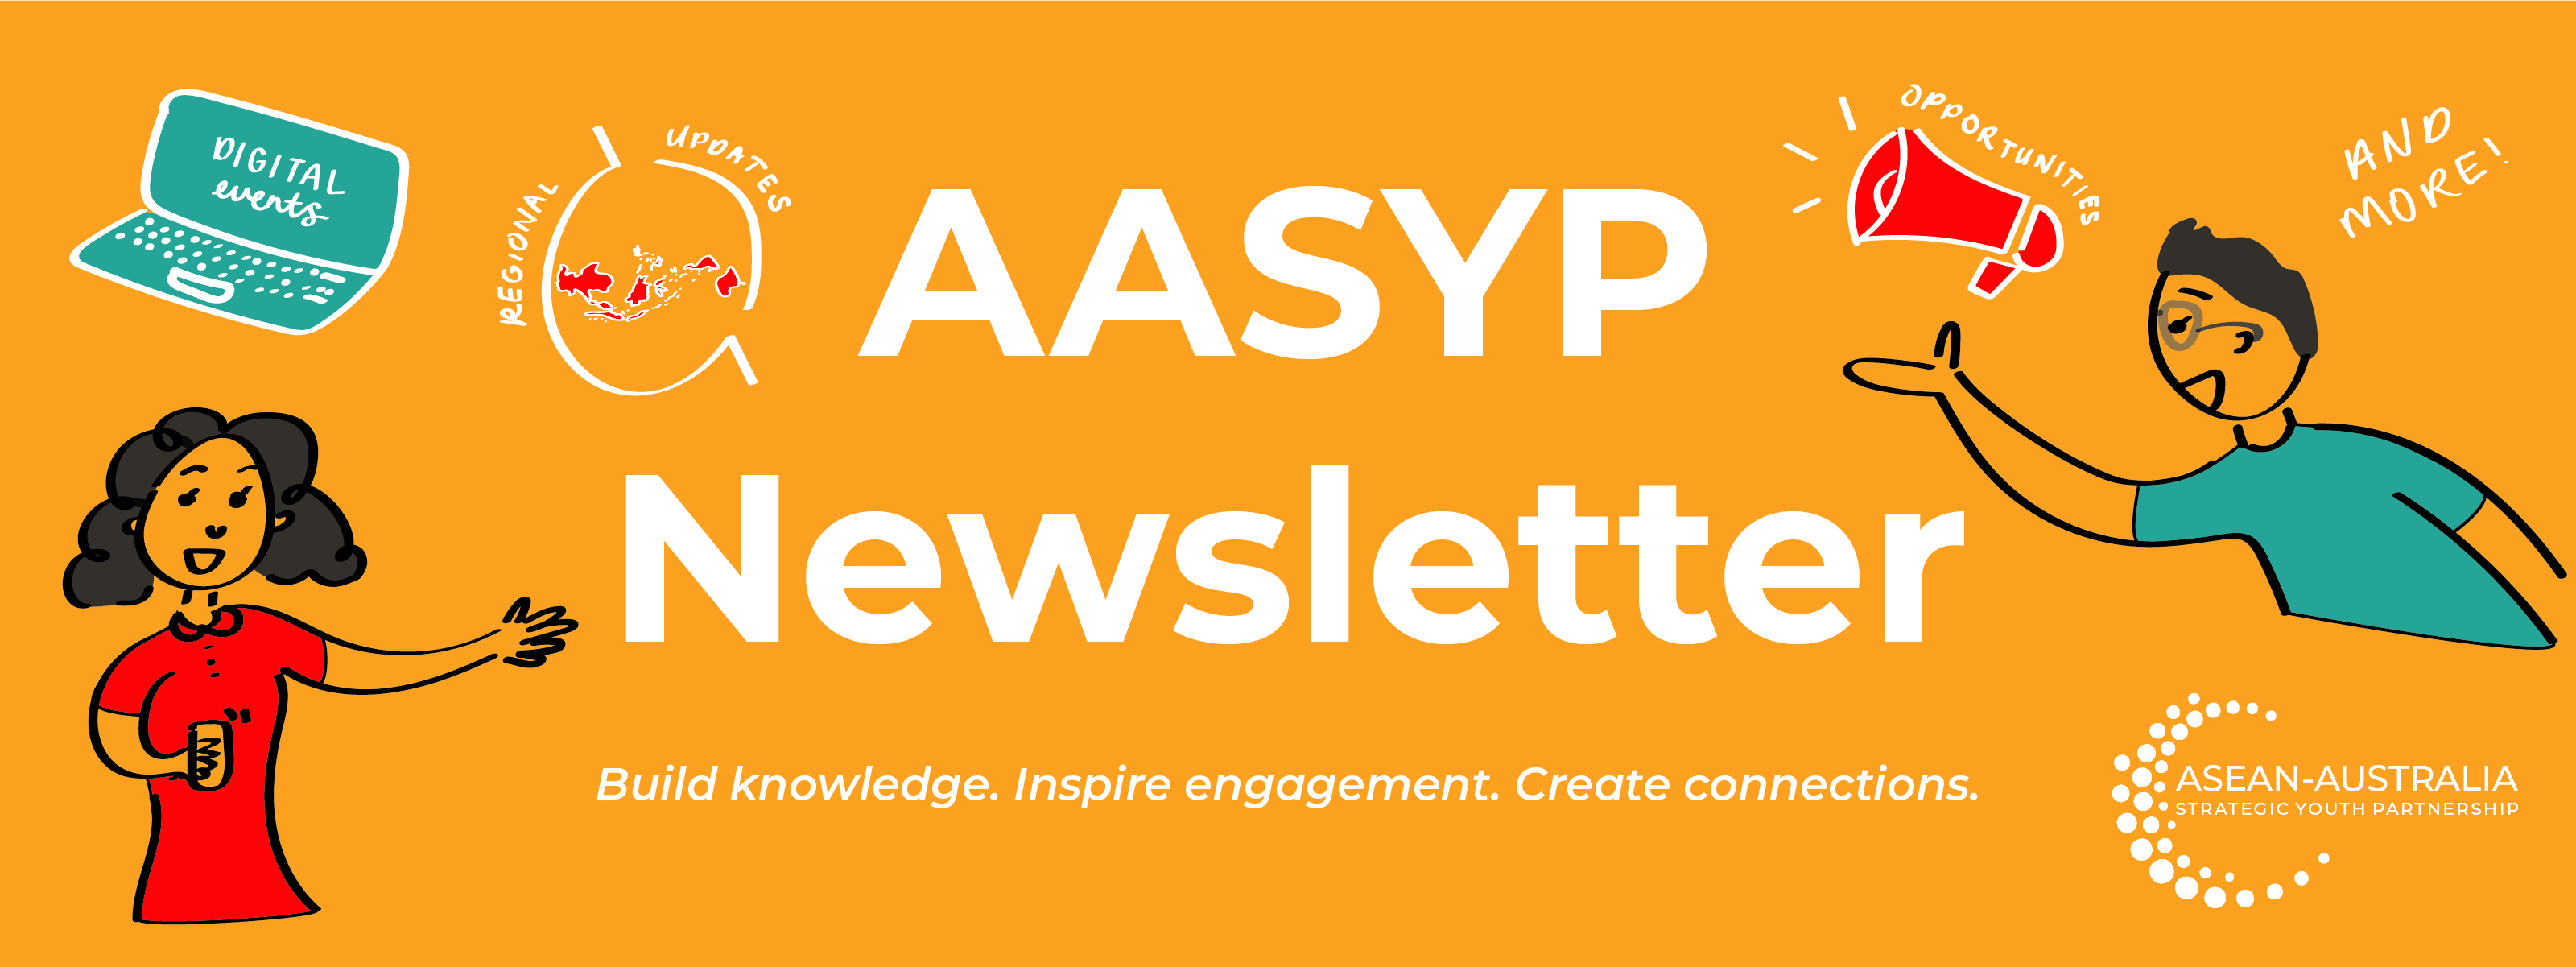 Welcome to the AASYP Newsletter